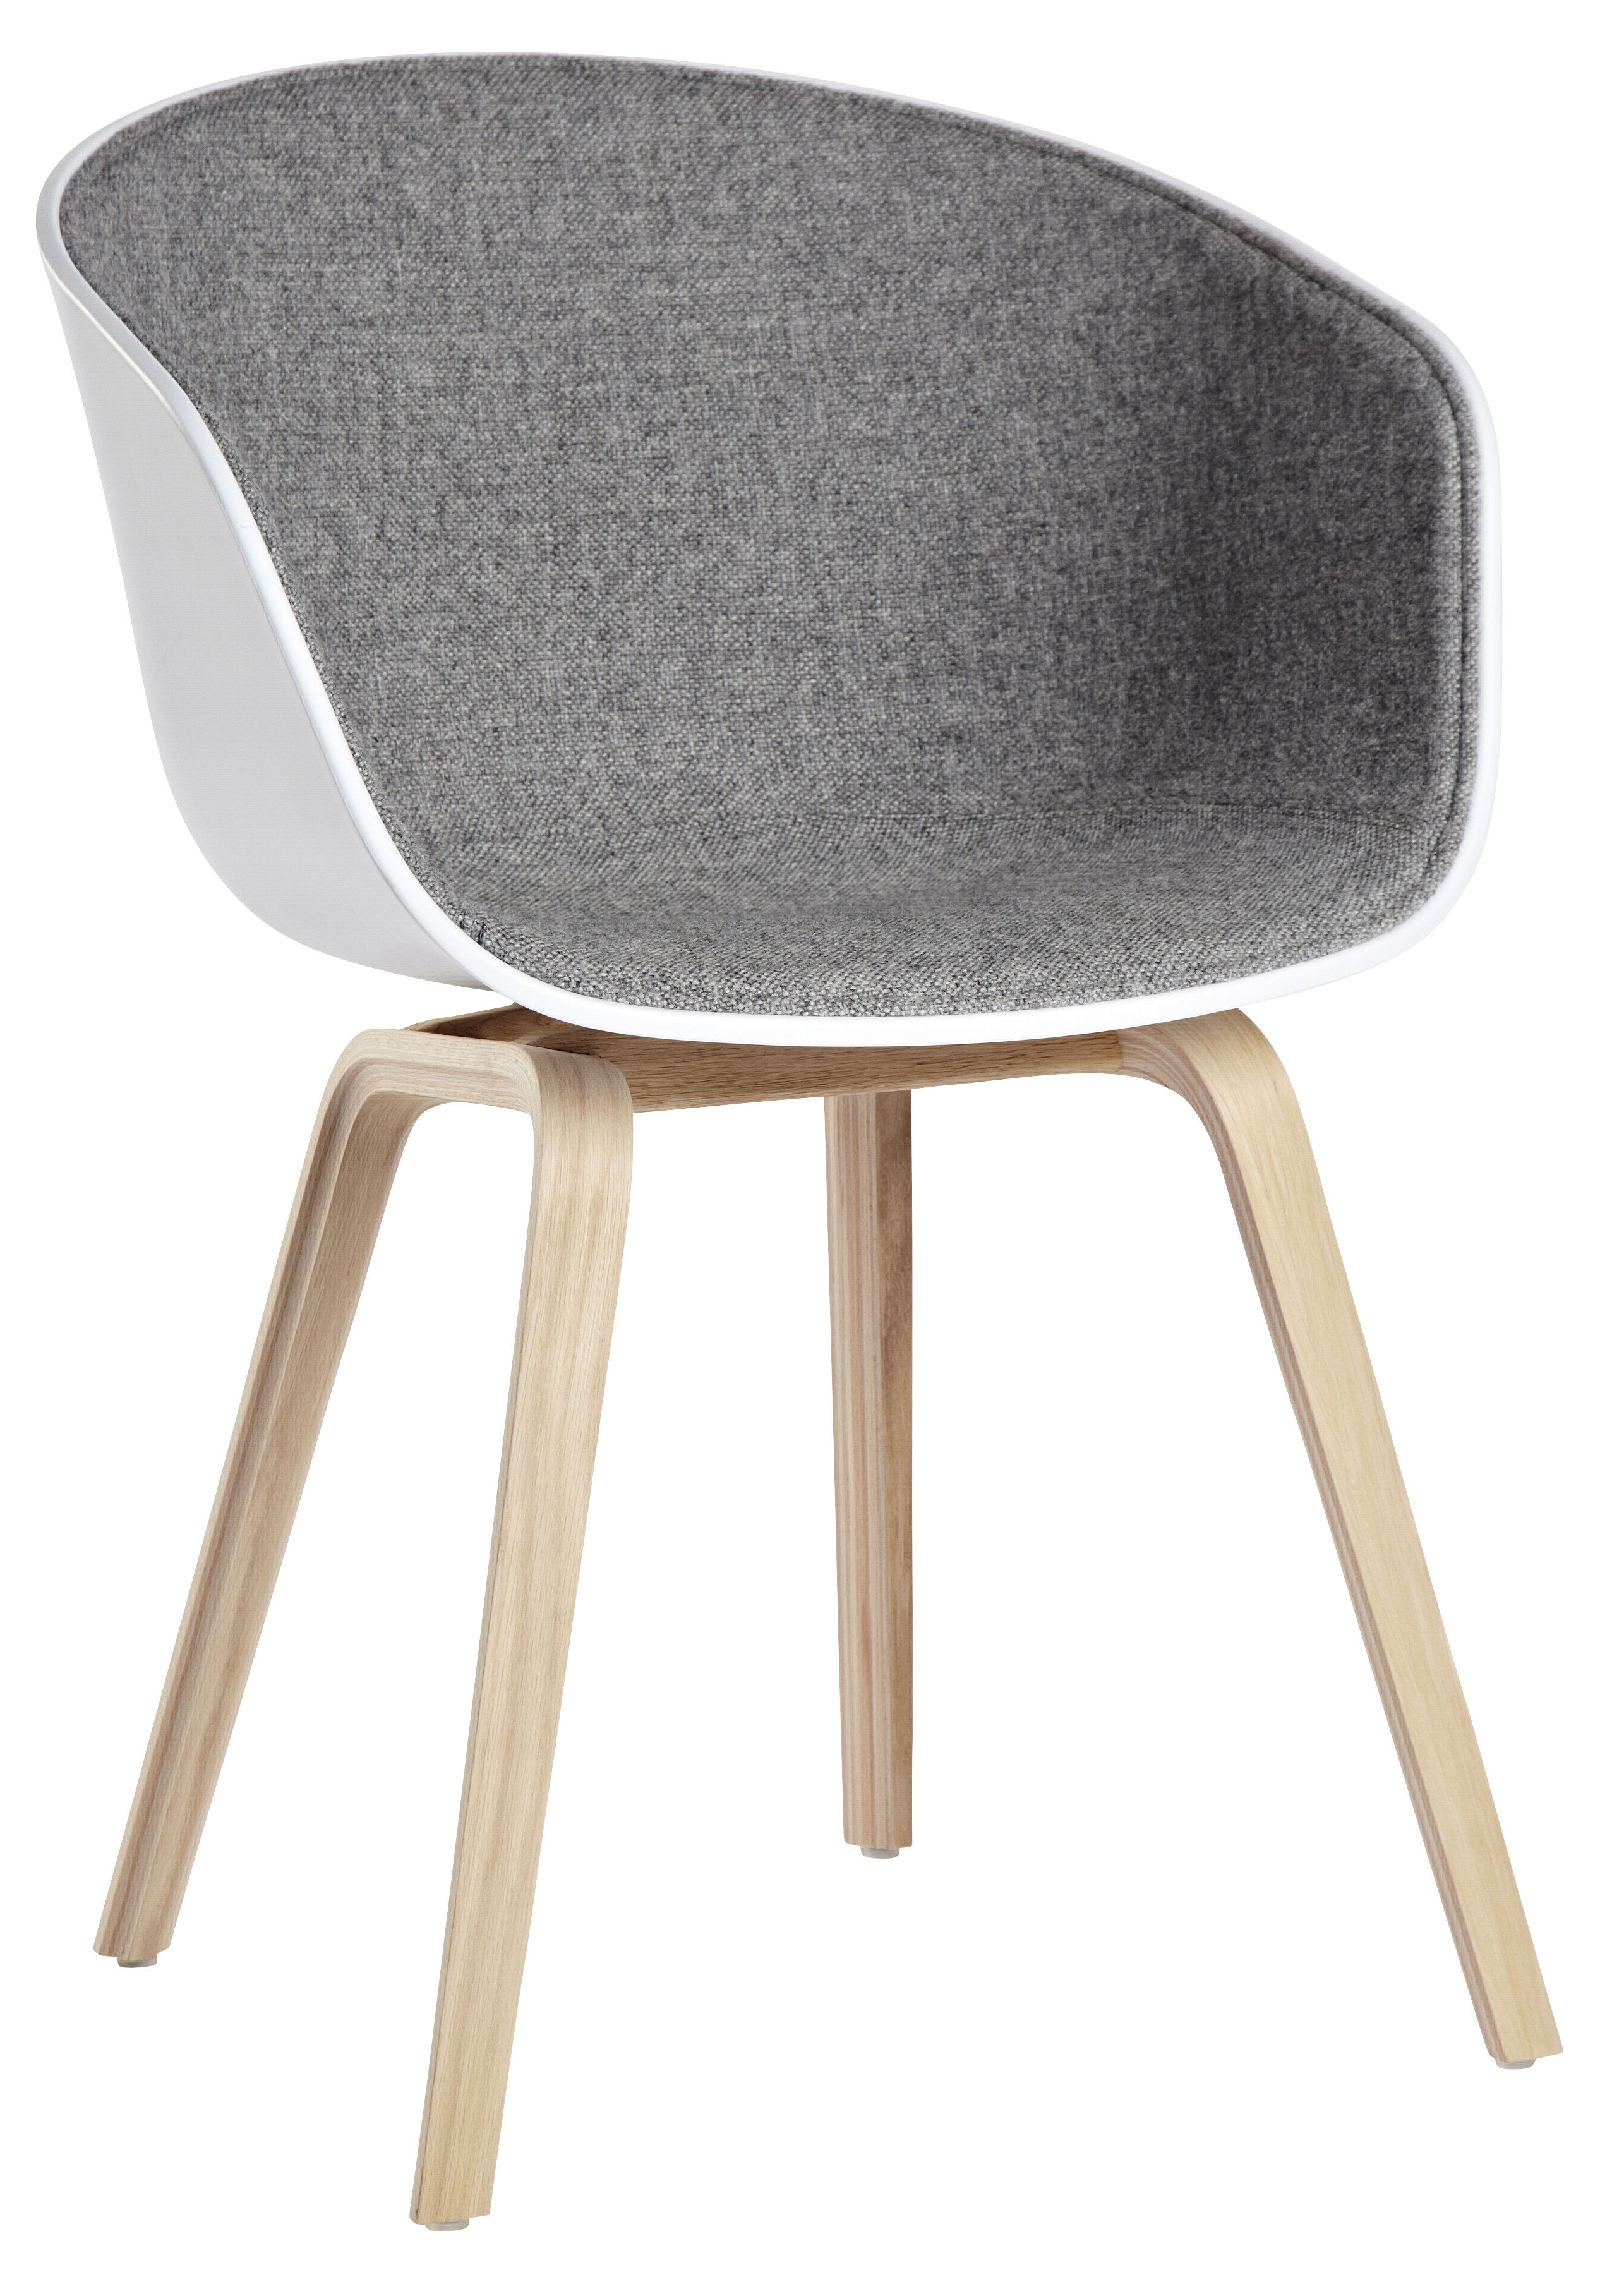 Fauteuil Design Style Italien Scandinave Made In Design - Fauteuil design scandinave